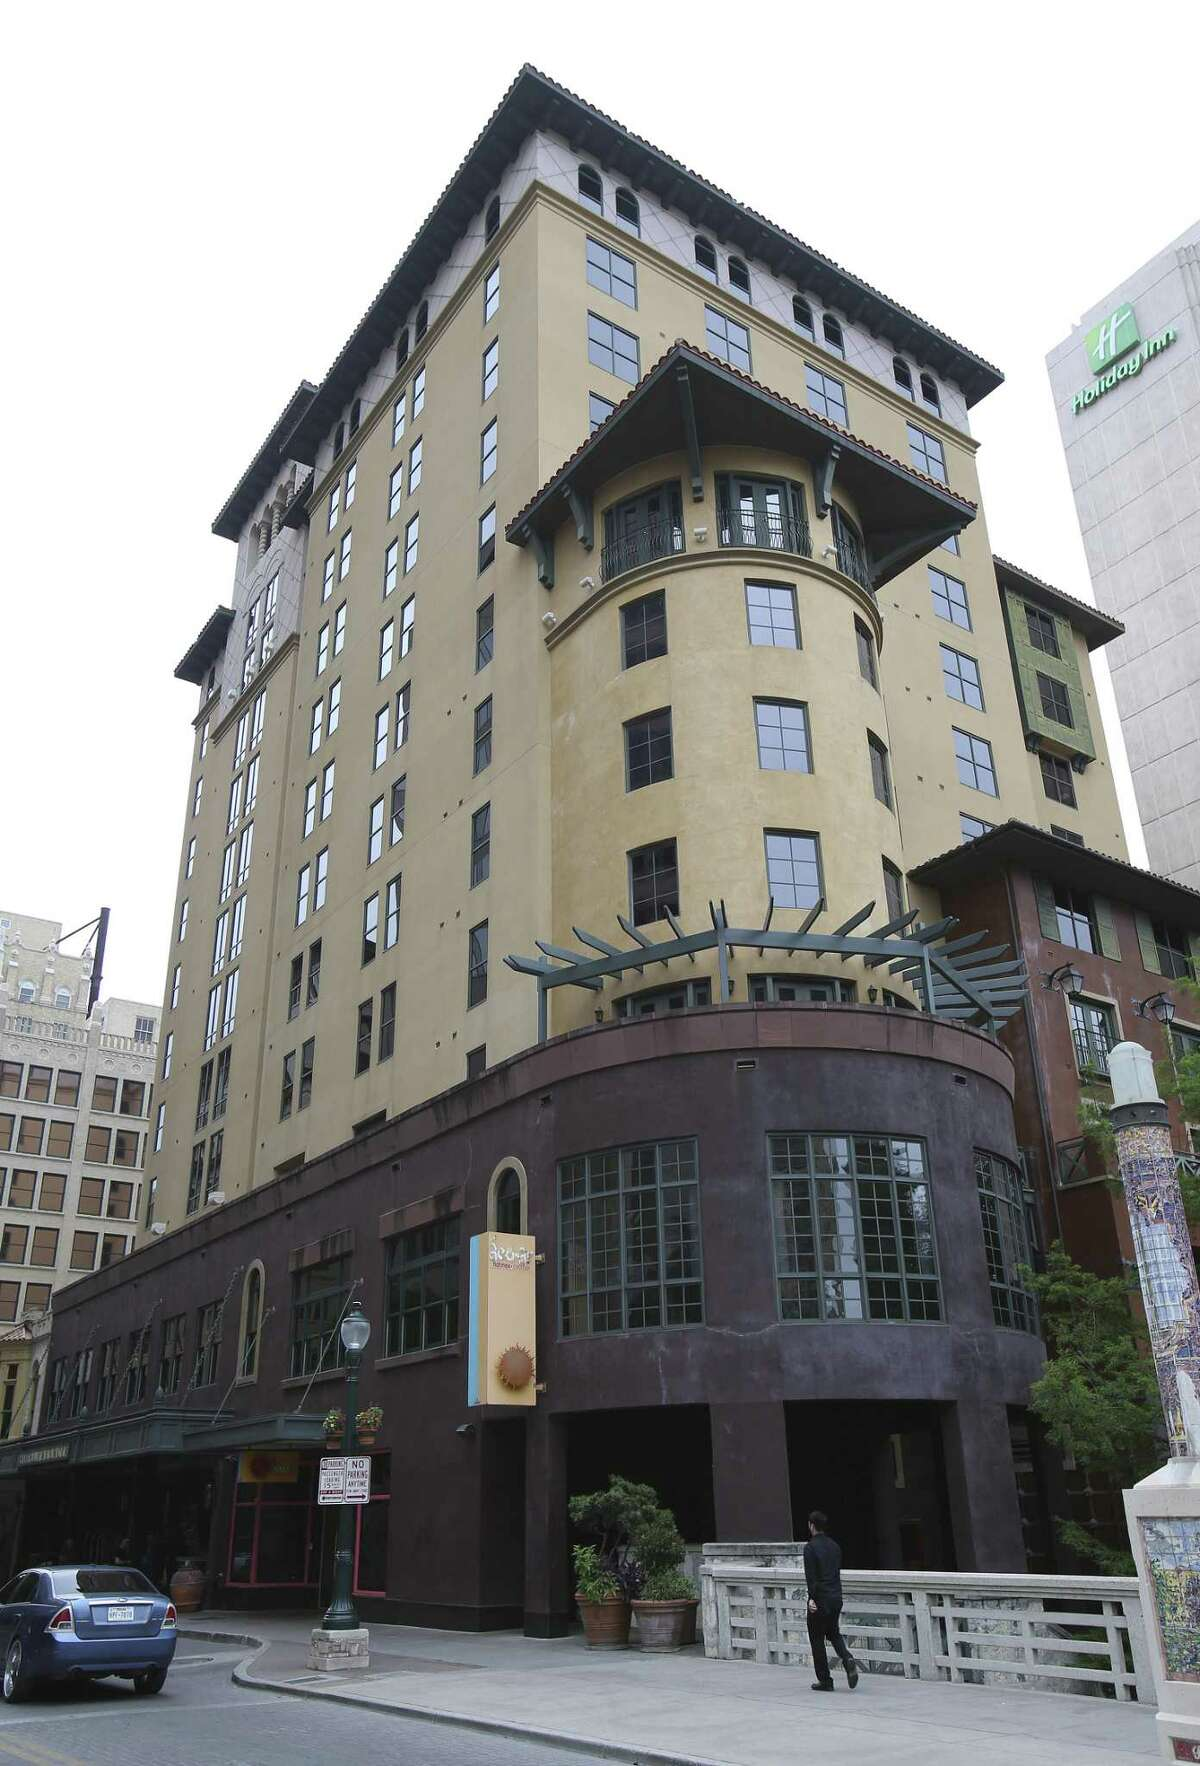 A New York real estate firm bought the Hotel Valencia property in downtown San Antonio - nearly two years after a Houston company bought the land for more than $14 million.